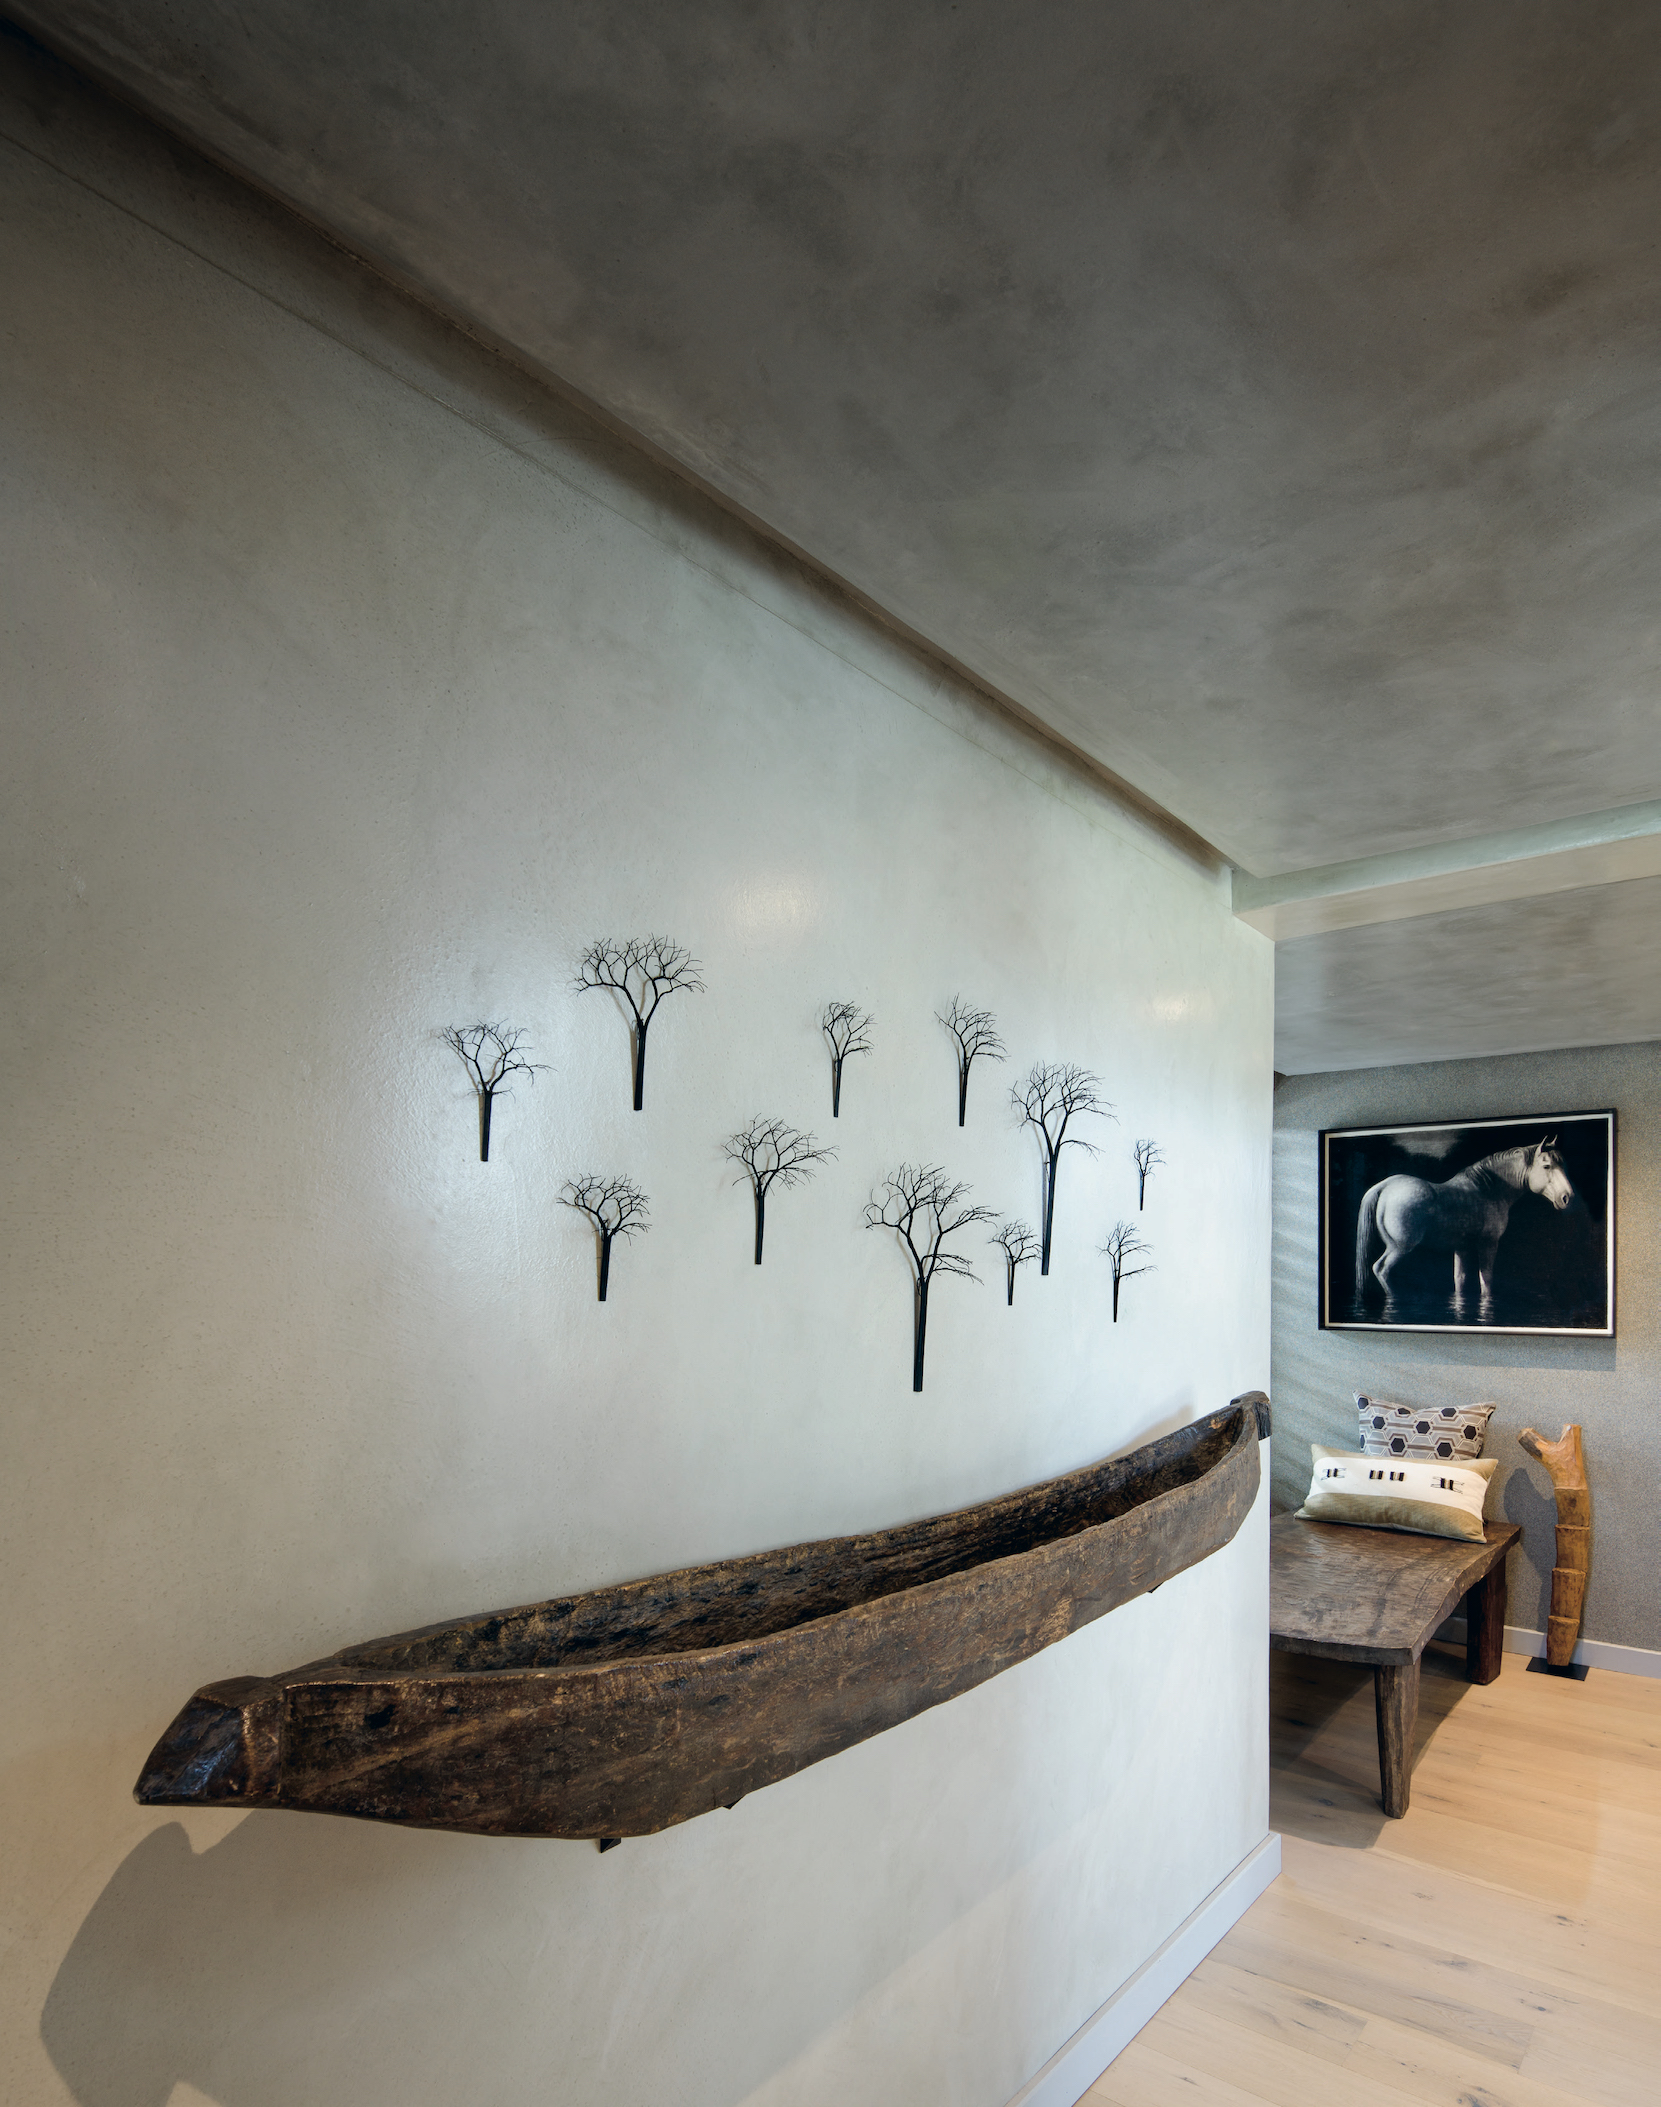 A traditional mokoro canoe from the Okavango region is mounted on the wall as a work of art.